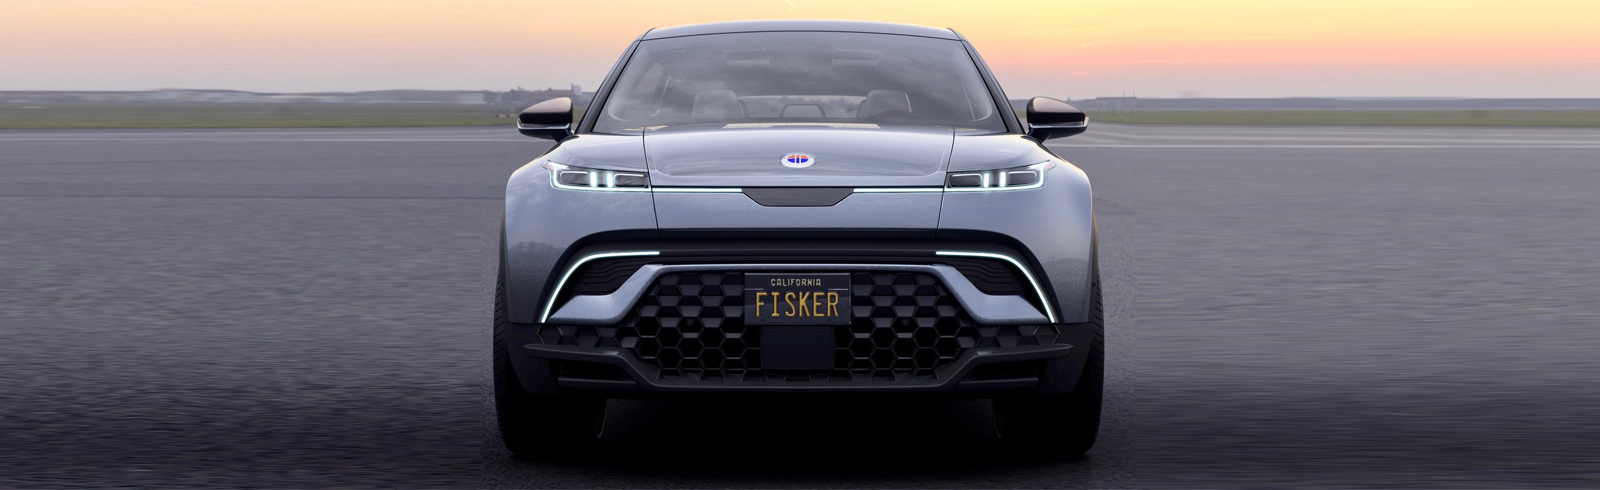 Fisker Ocean teased again with 250-300 miles of range